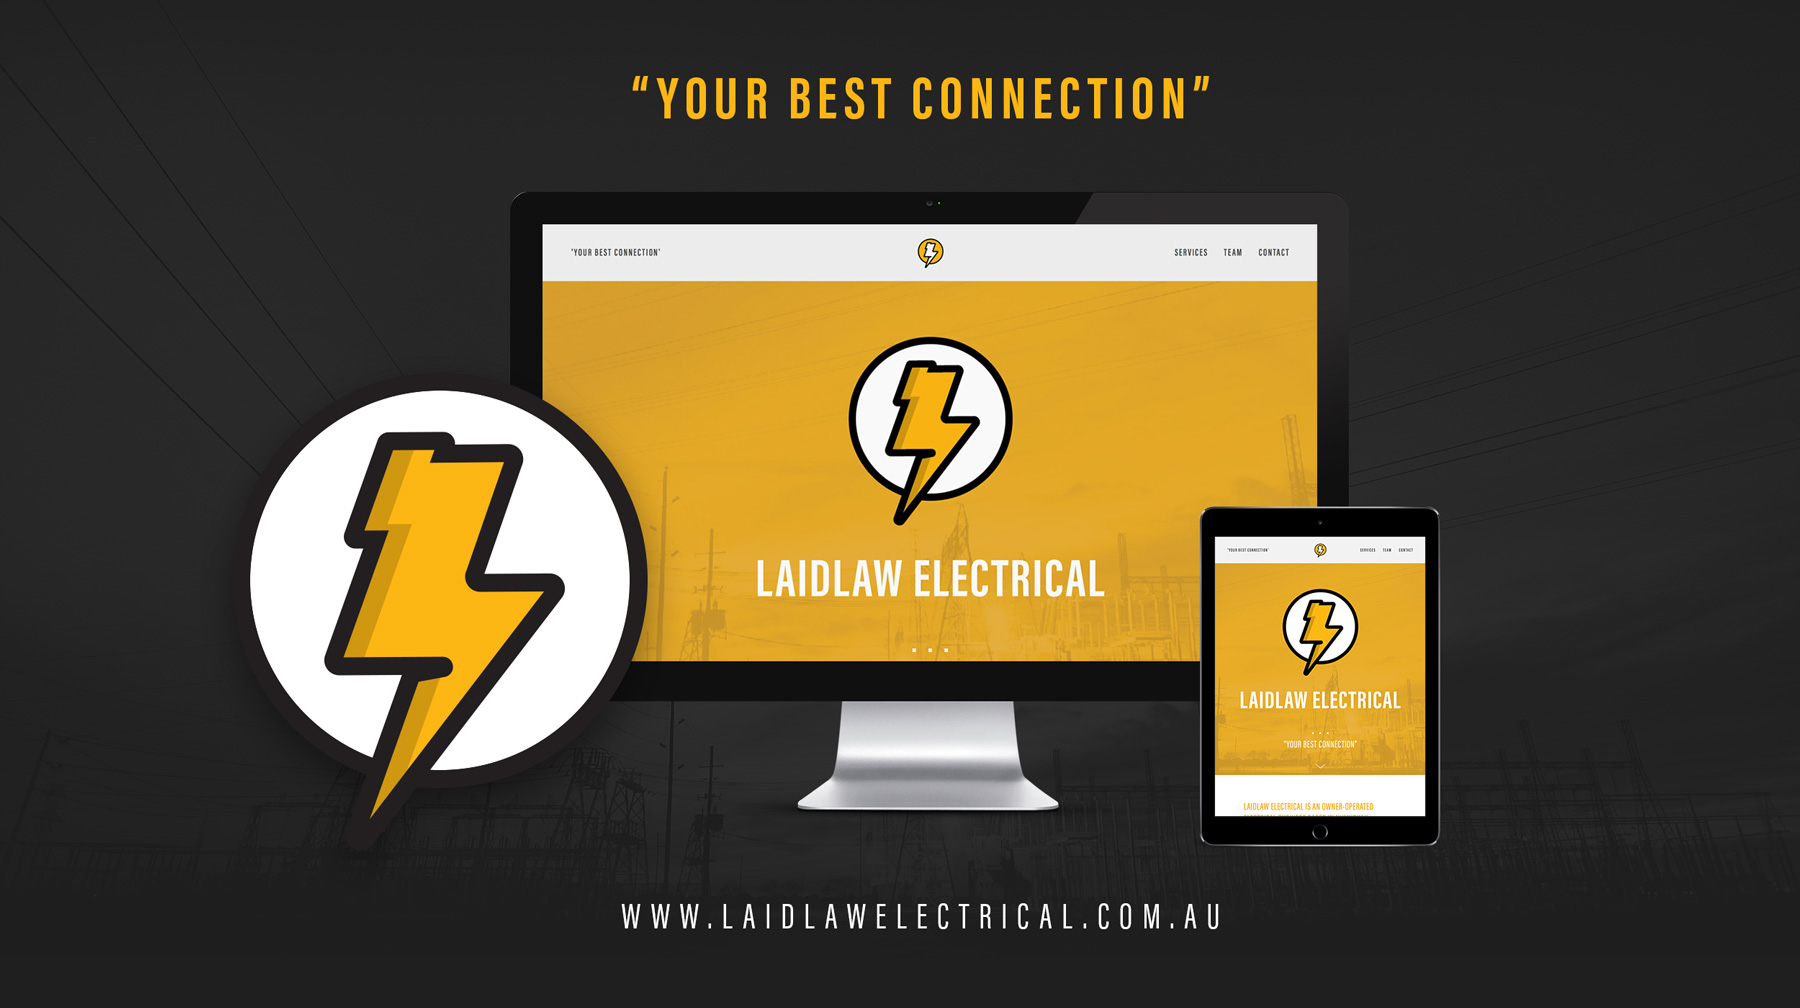 Laidlaw+Electrical+New+Website.jpg